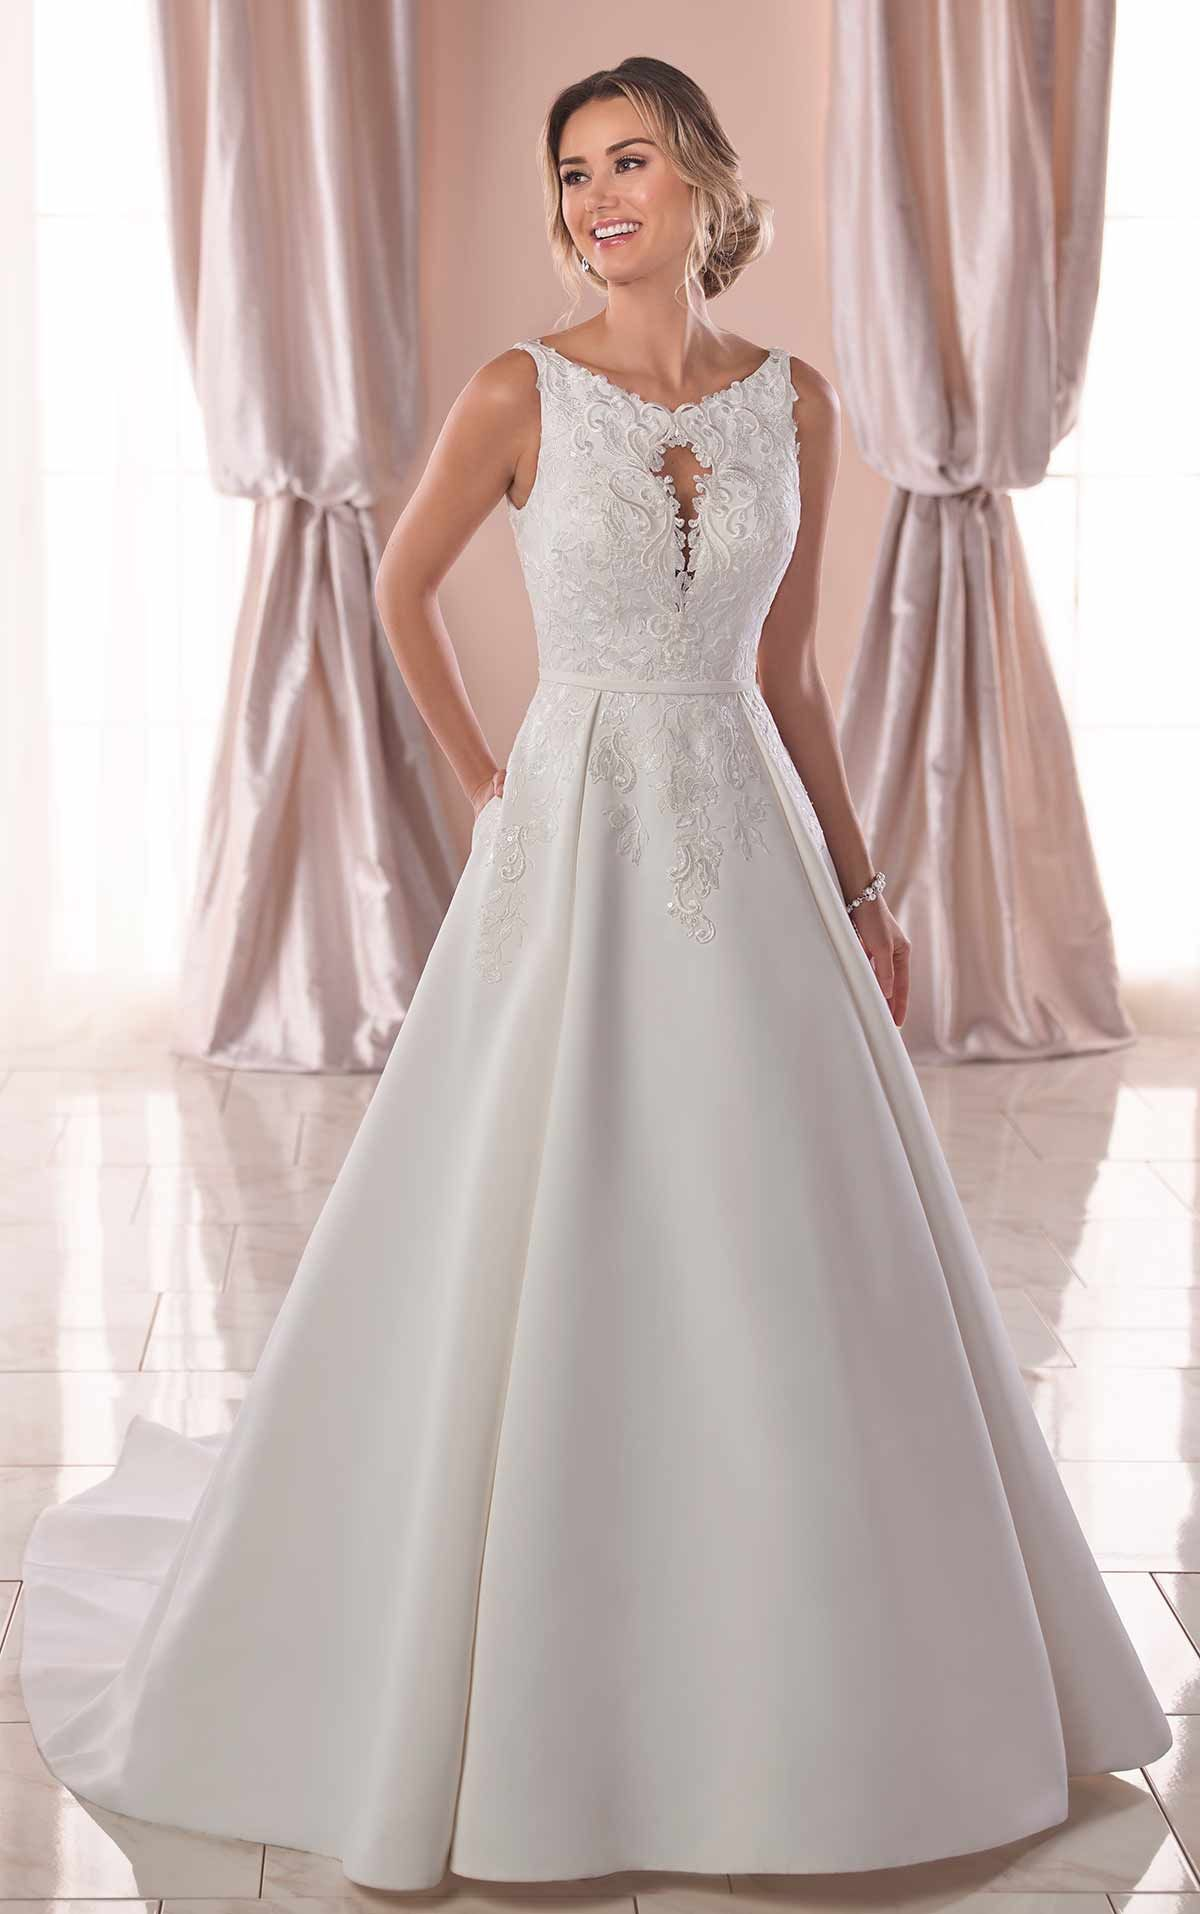 Simple Ballgown with PeekaBoo Neckline Stella York